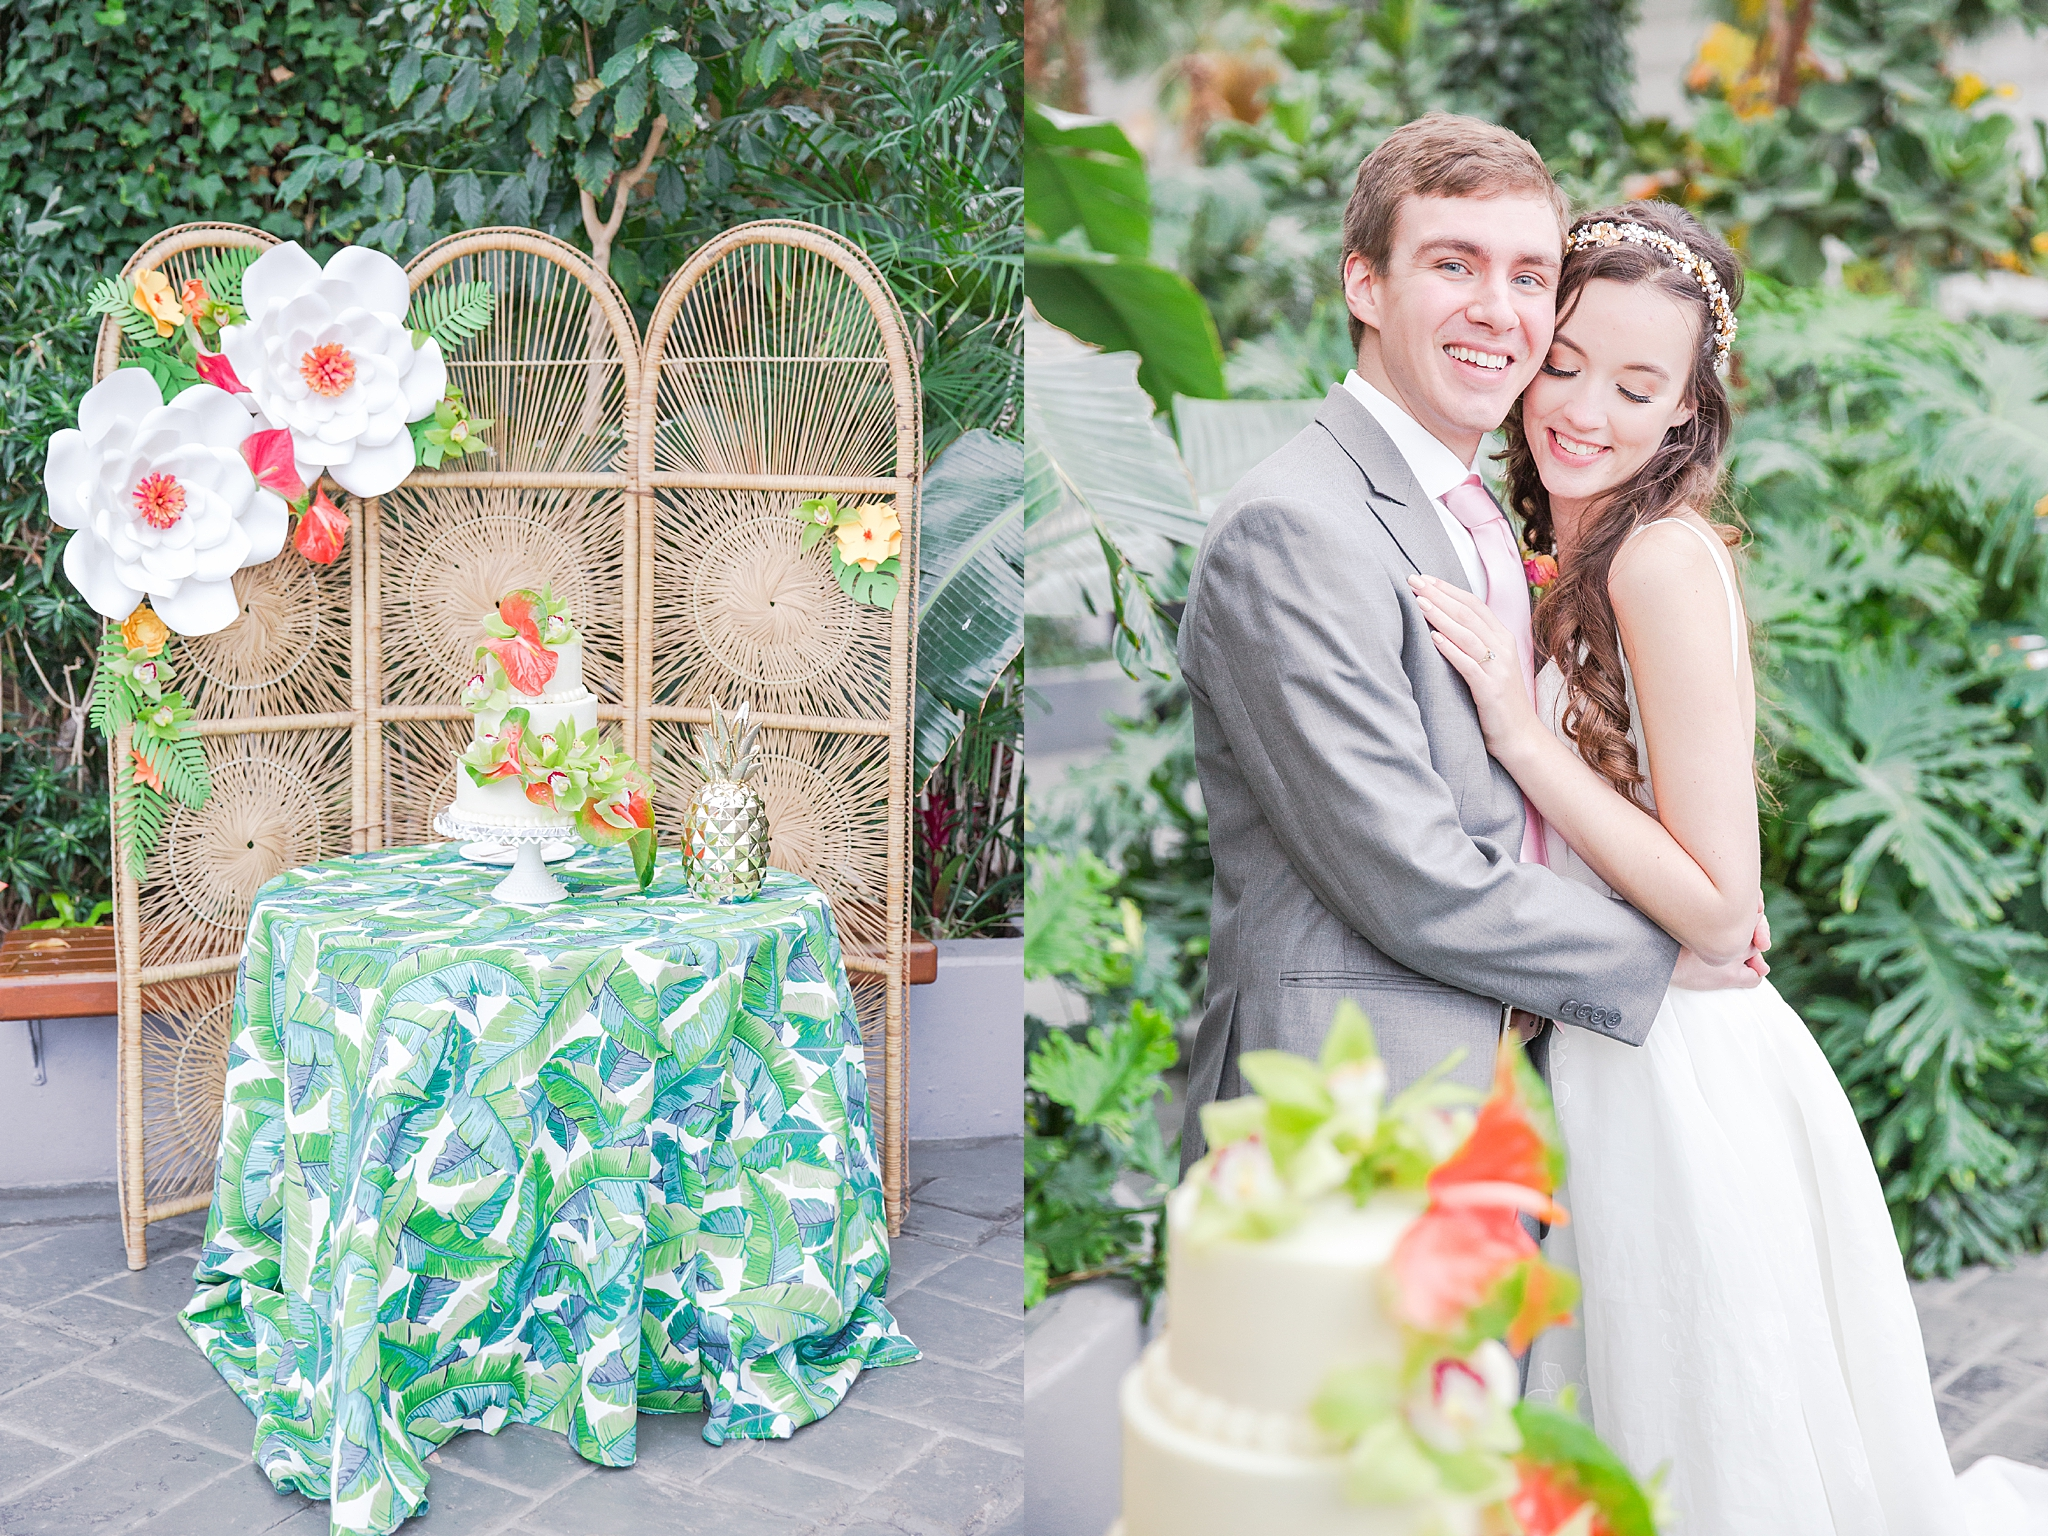 colorful-tropical-wedding-photos-at-the-crystal-gardens-in-chicago-illinois-by-courtney-carolyn-photography_0039.jpg